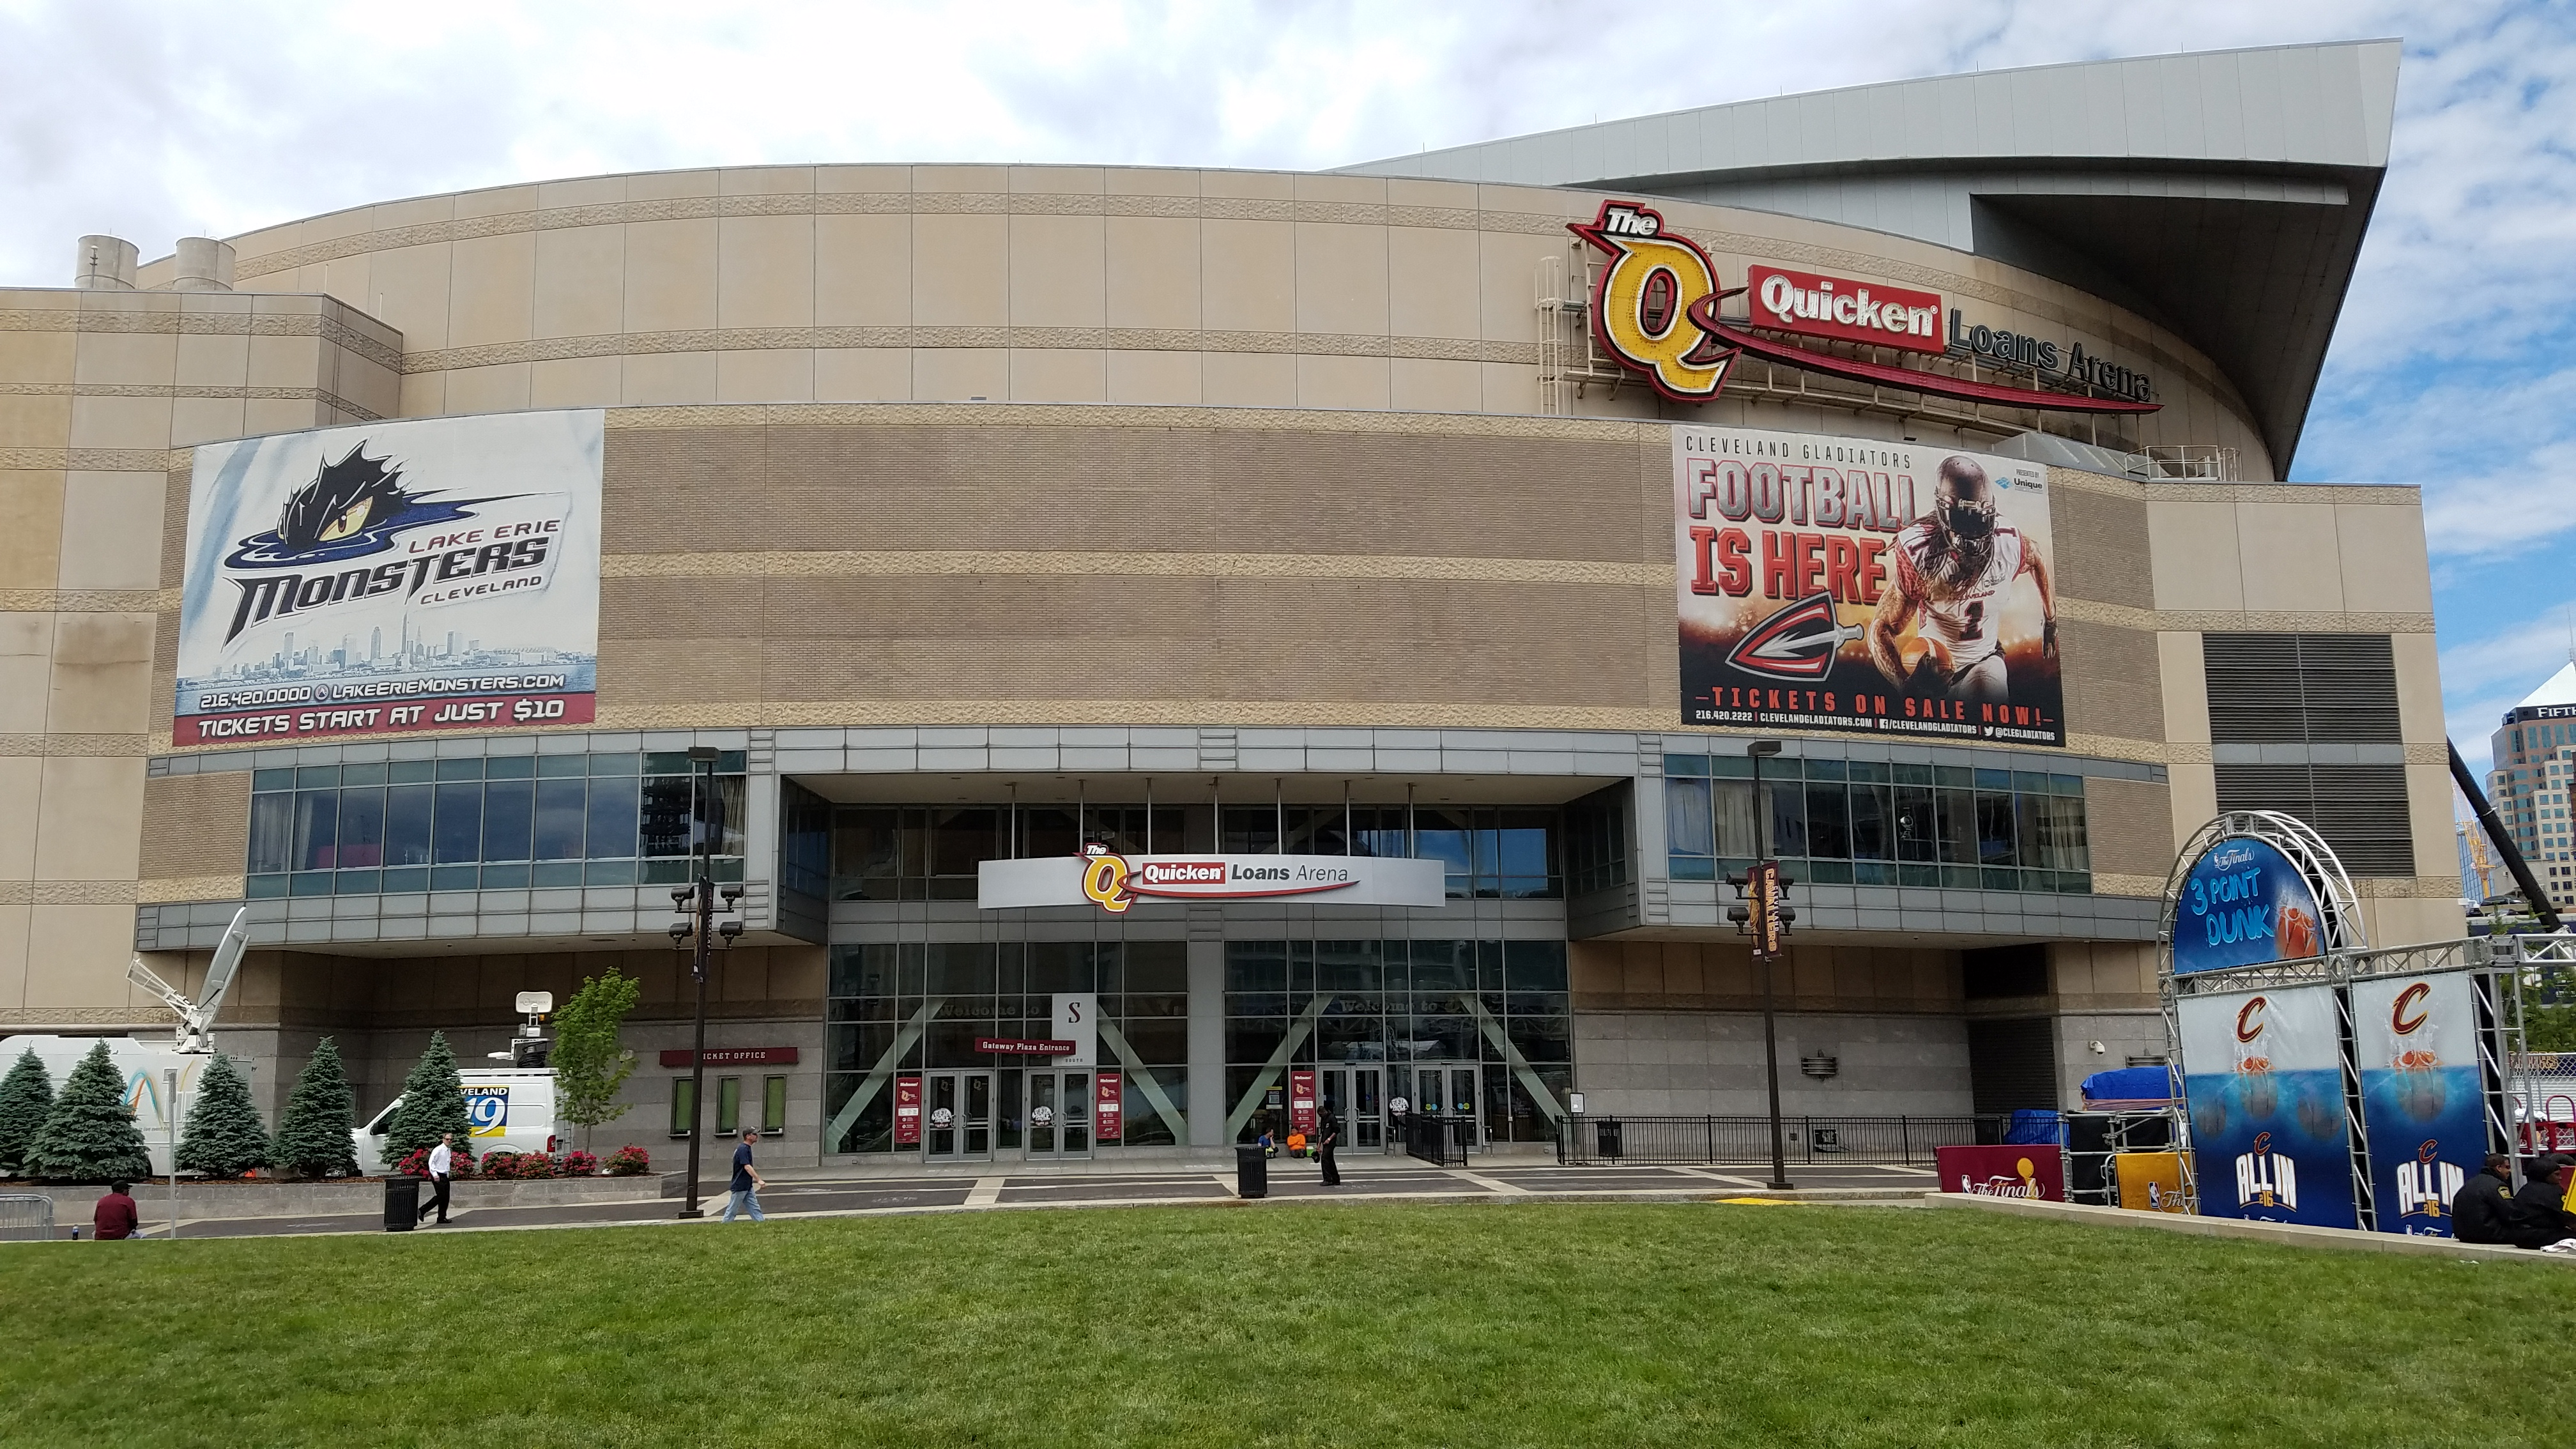 In Cleveland, Quicken Loans Arena will share its championship stage next month as the Republican National Convention (RNC) takes place July 18-21